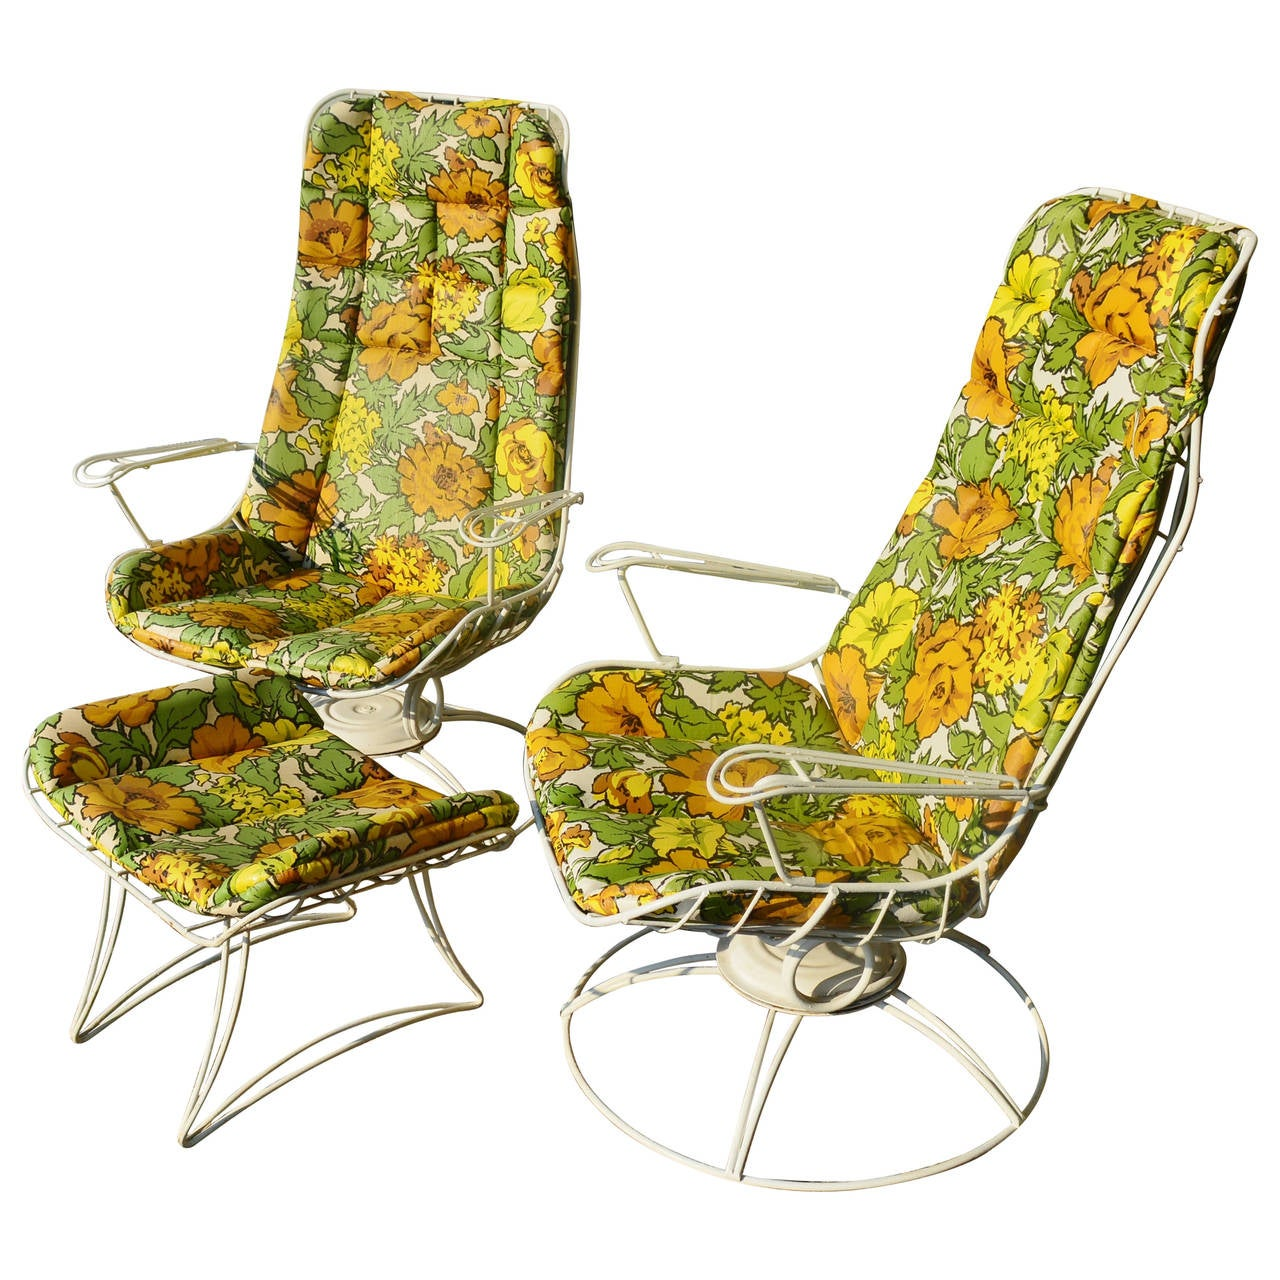 Rare Pair Homecrest Rocking Lounge Chairs And Ottoman W